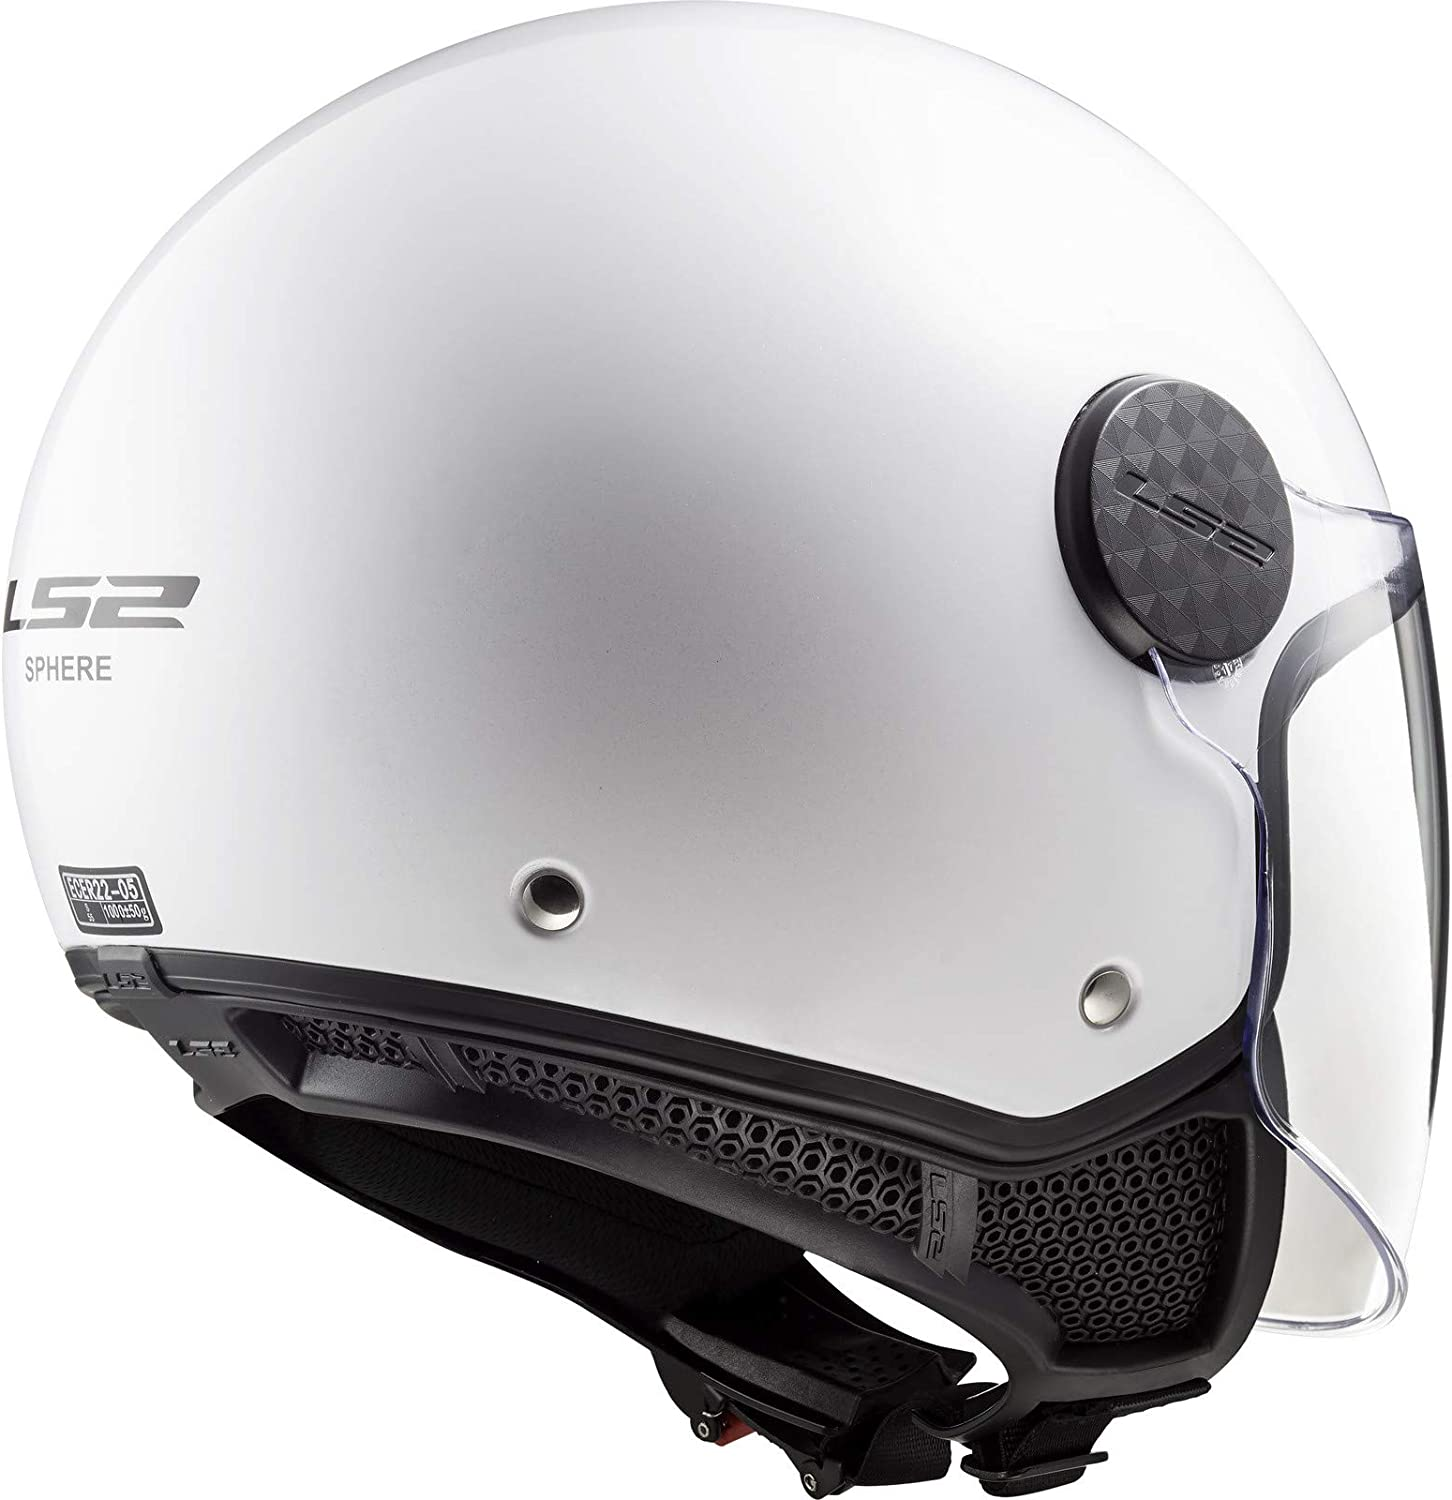 LS2 casque jet Sphere blanc Taille S